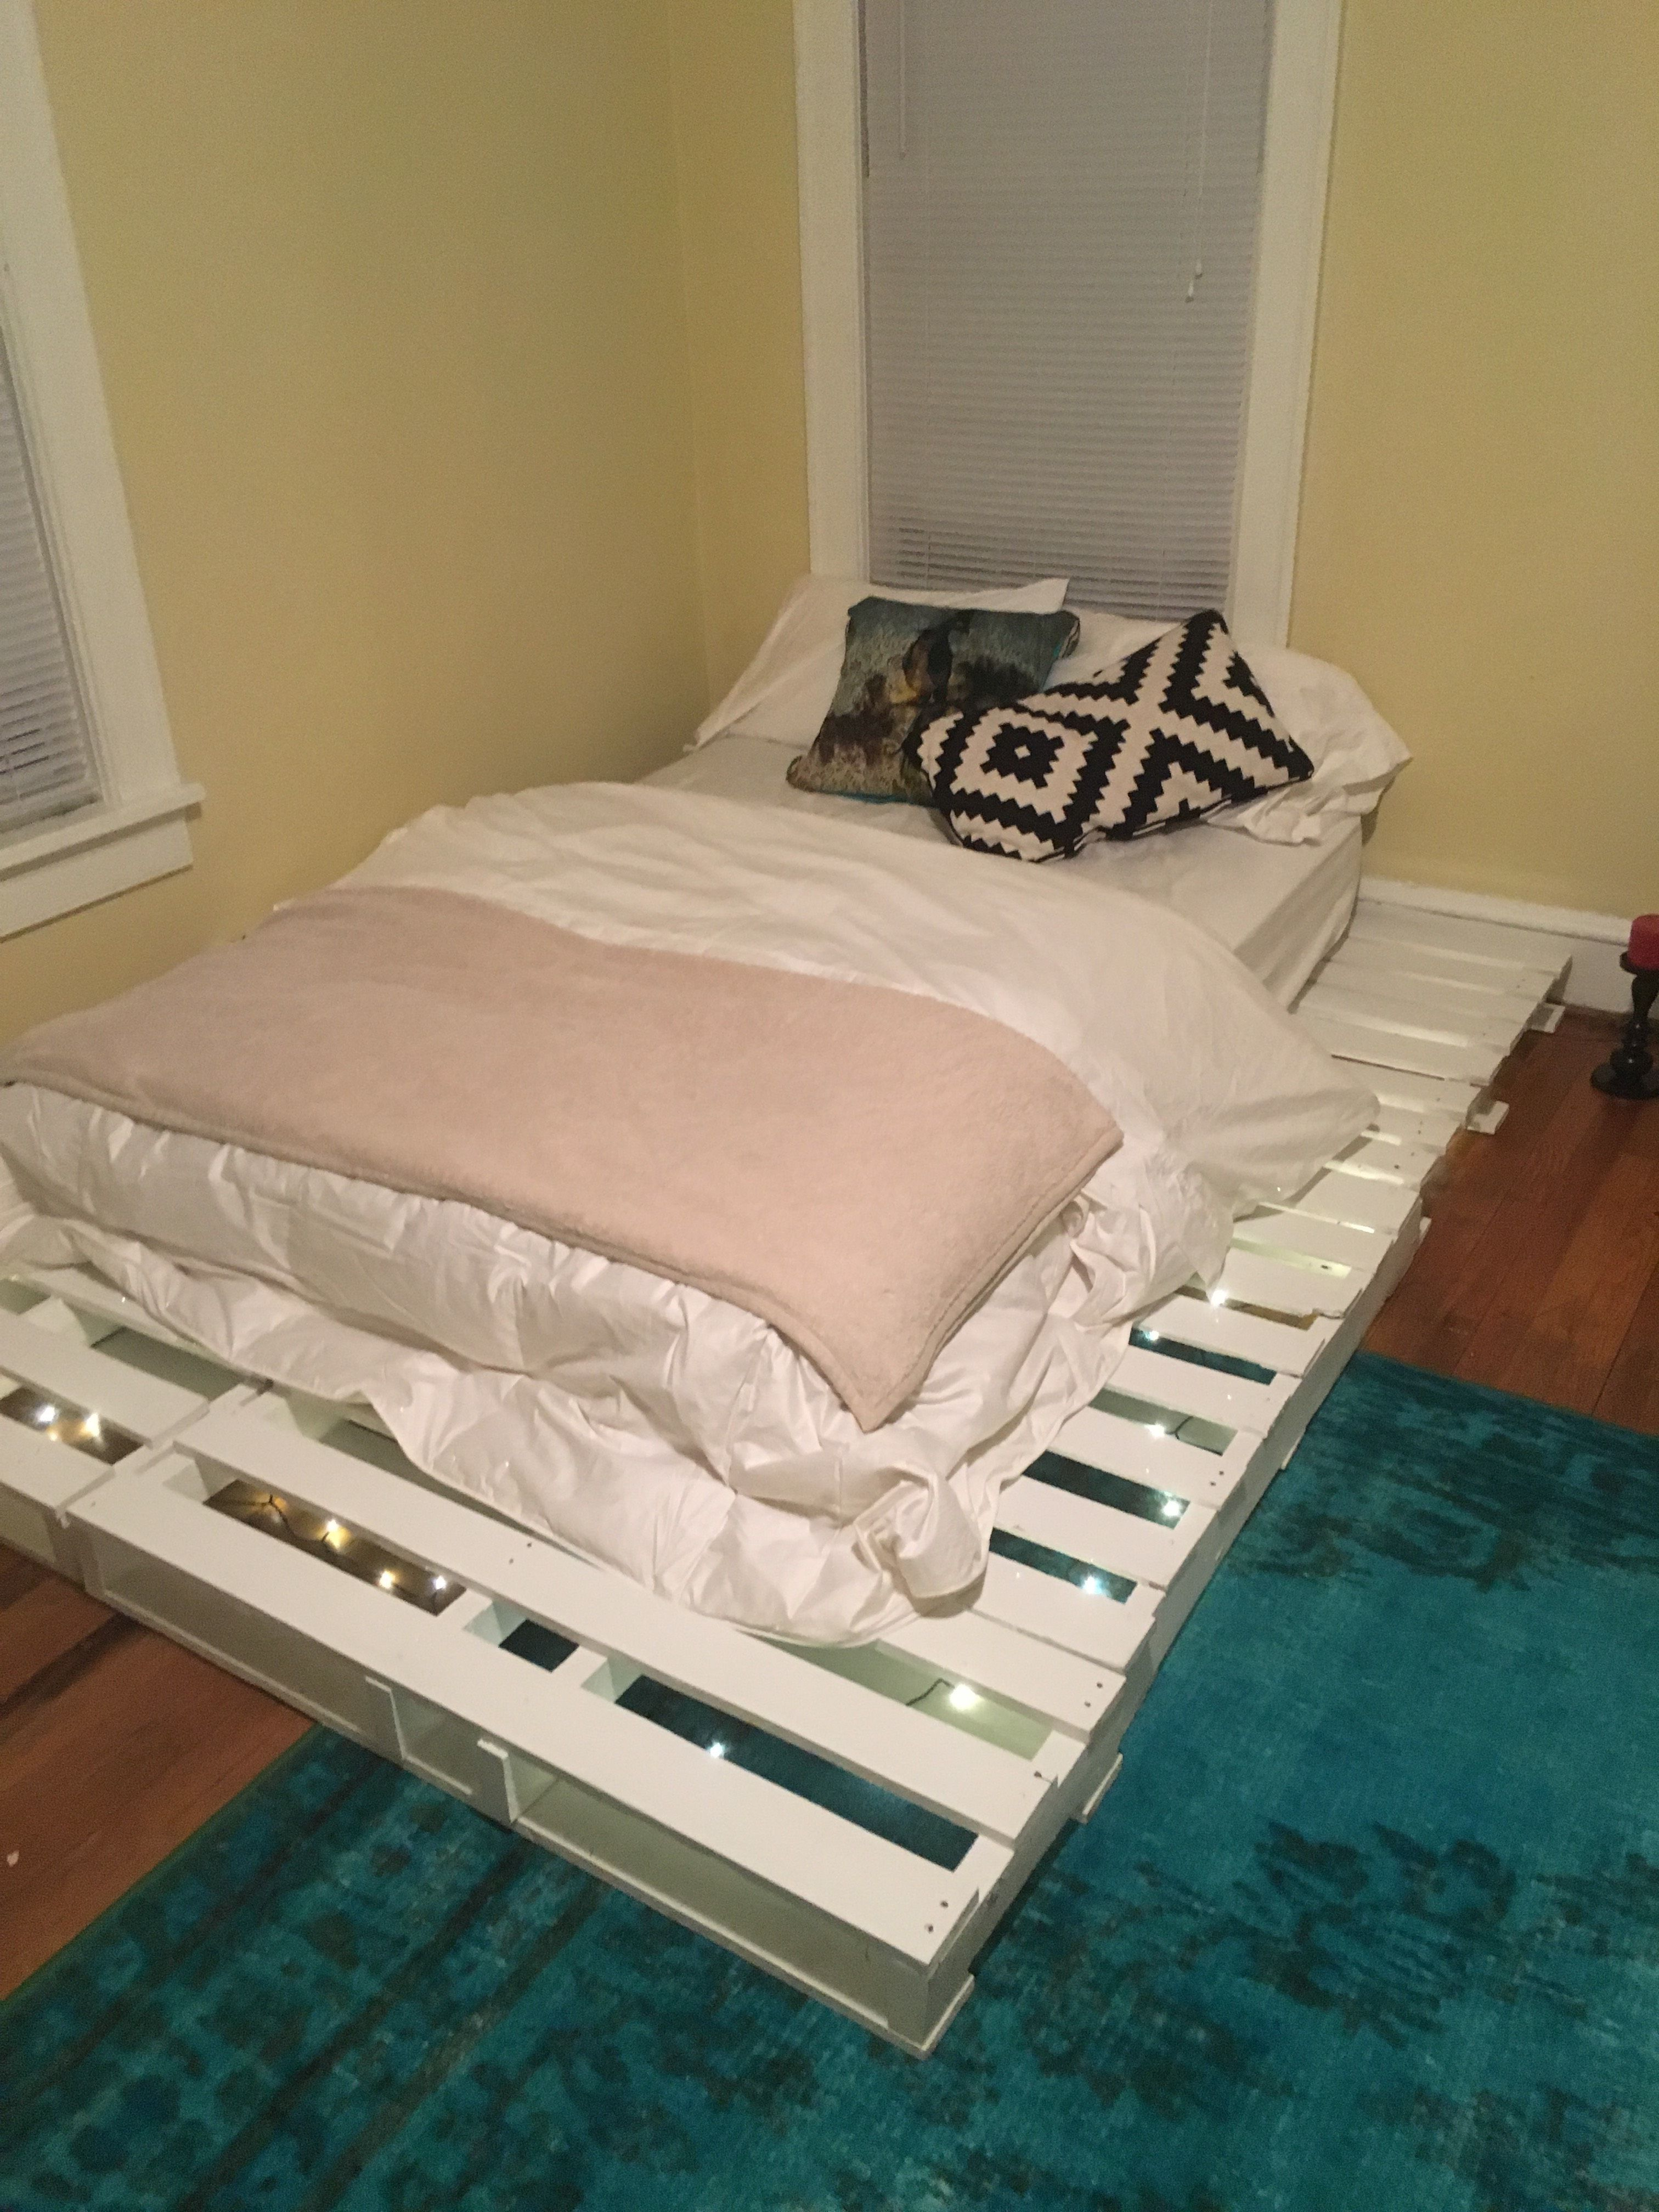 Jul 31 The Electric Chair Make your bed, Cozy place